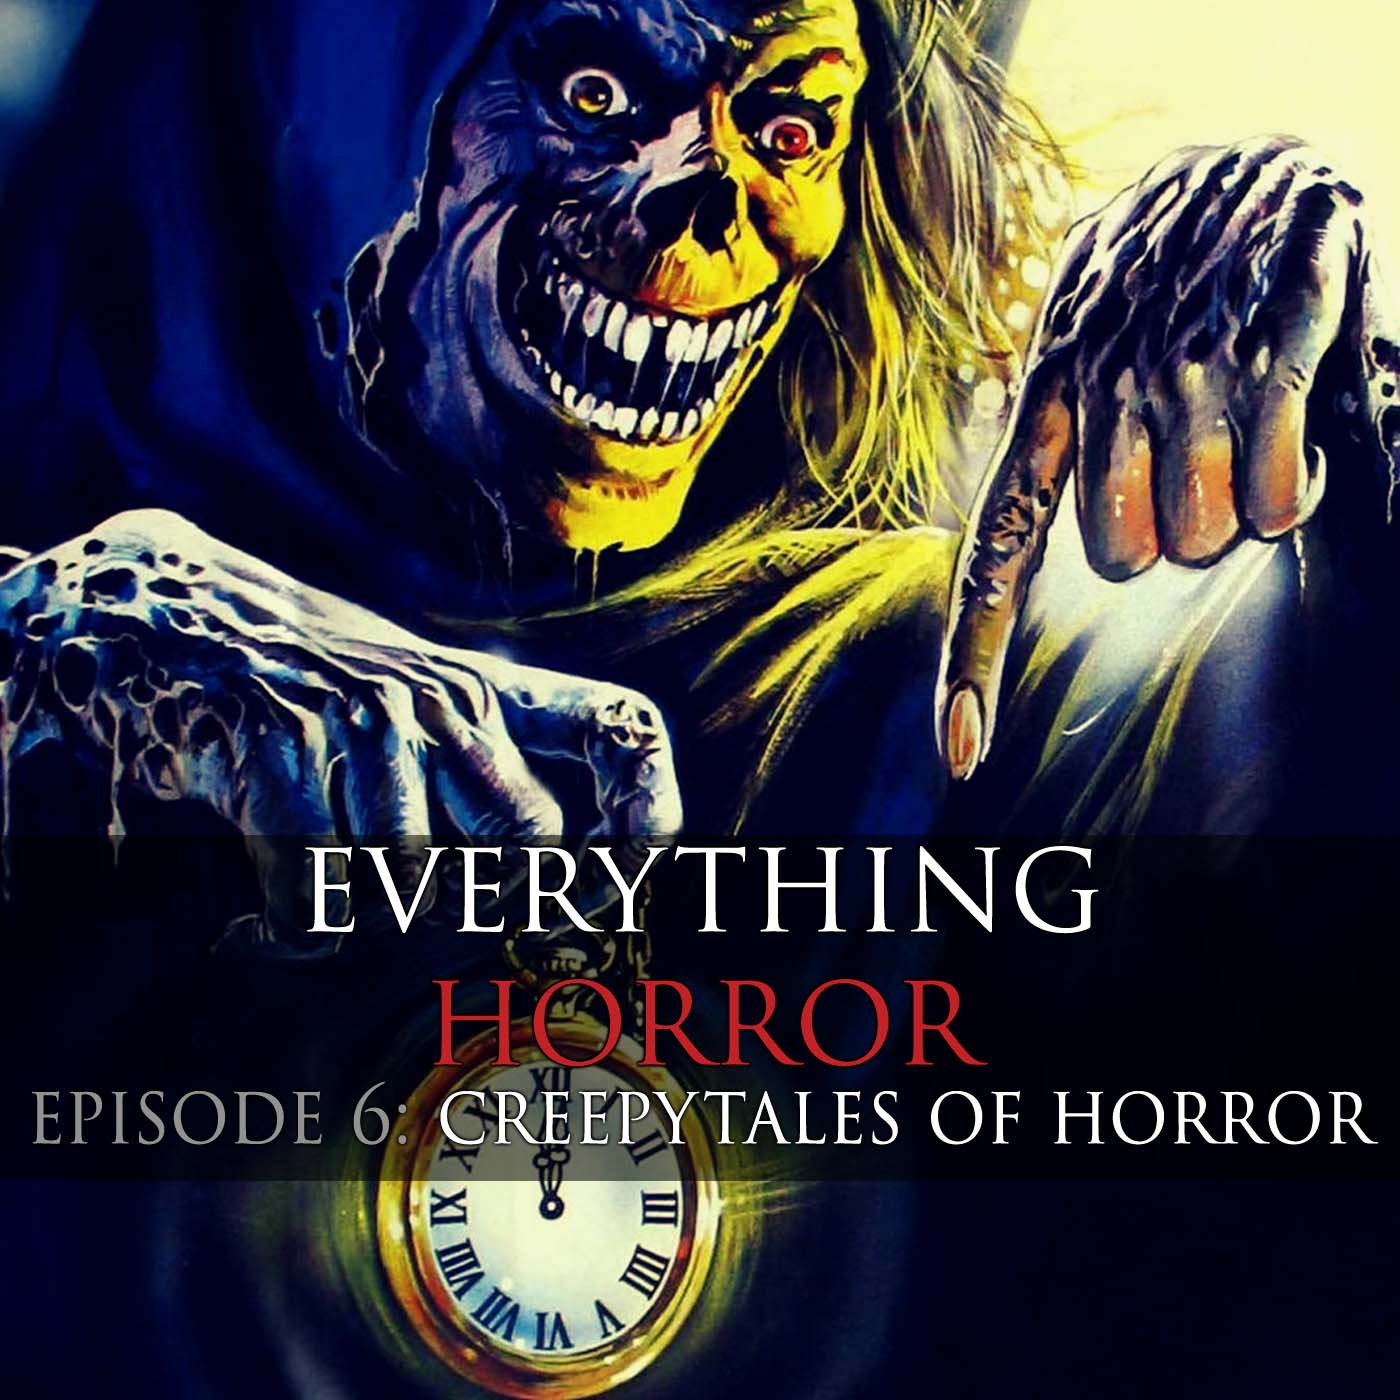 S1: Episode 6: Creepytales of Horror